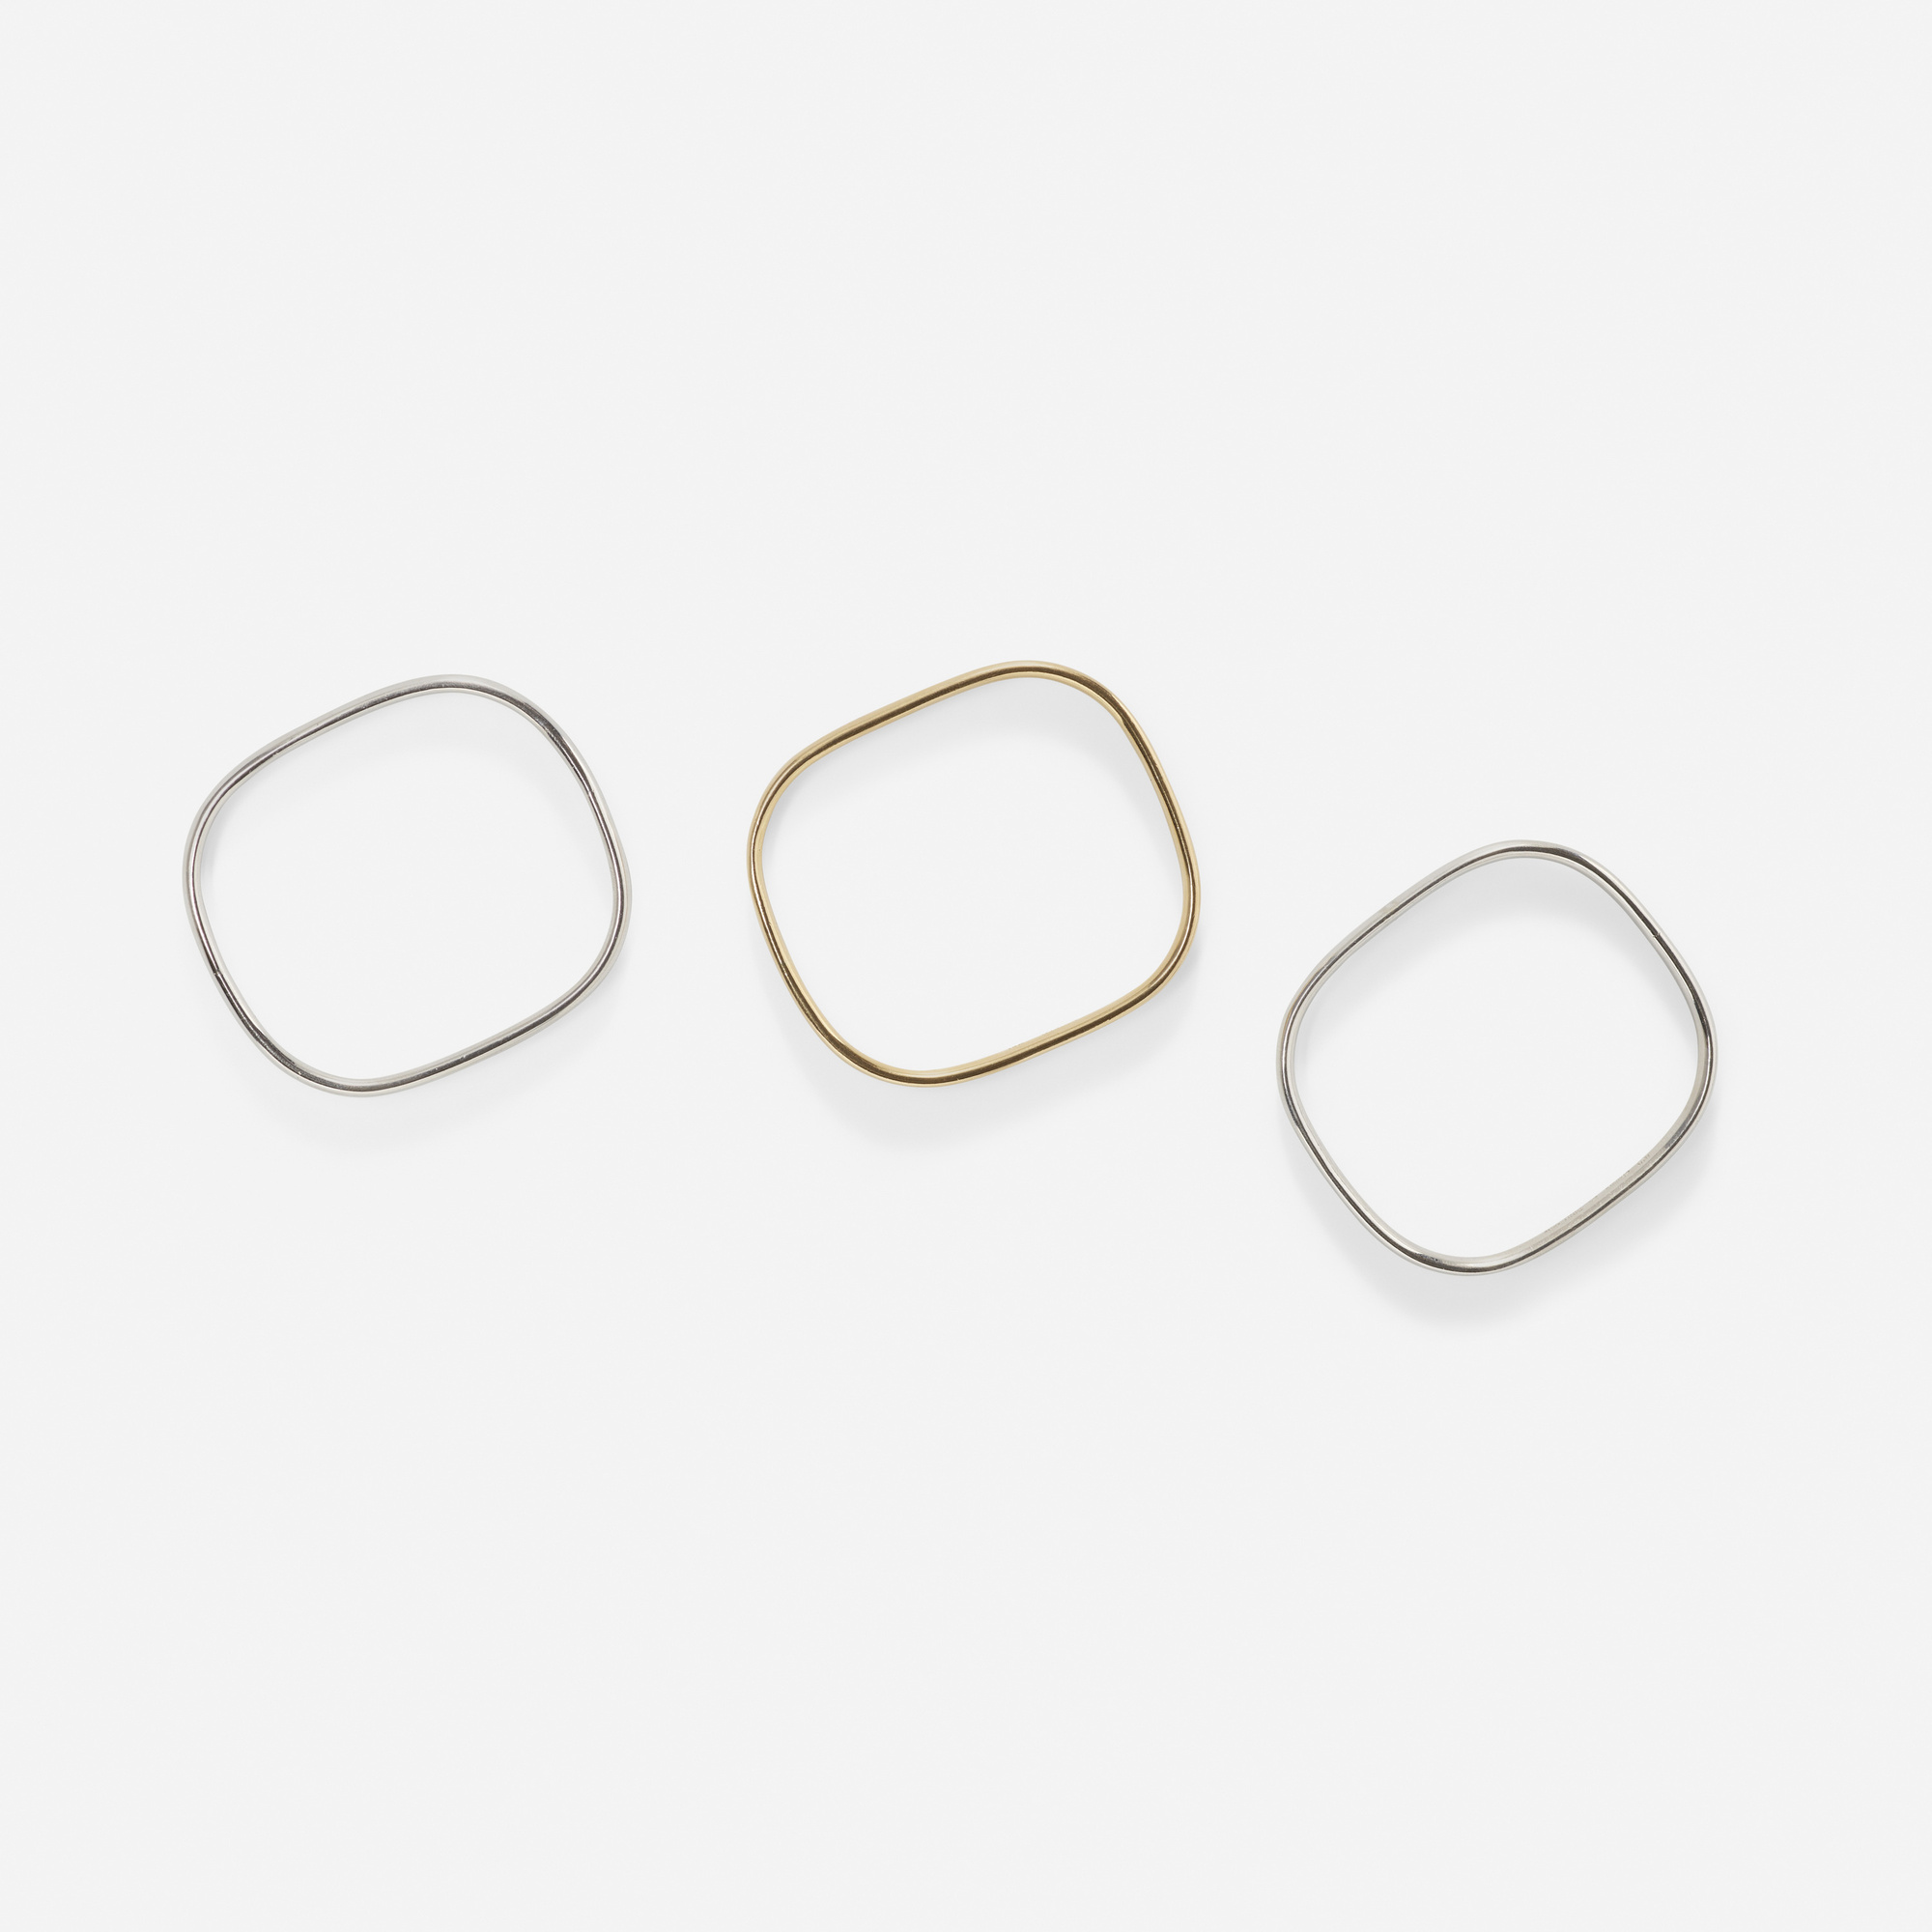 101: Jean Dinh Van for Cartier / A set of three gold bangles (2 of 2)